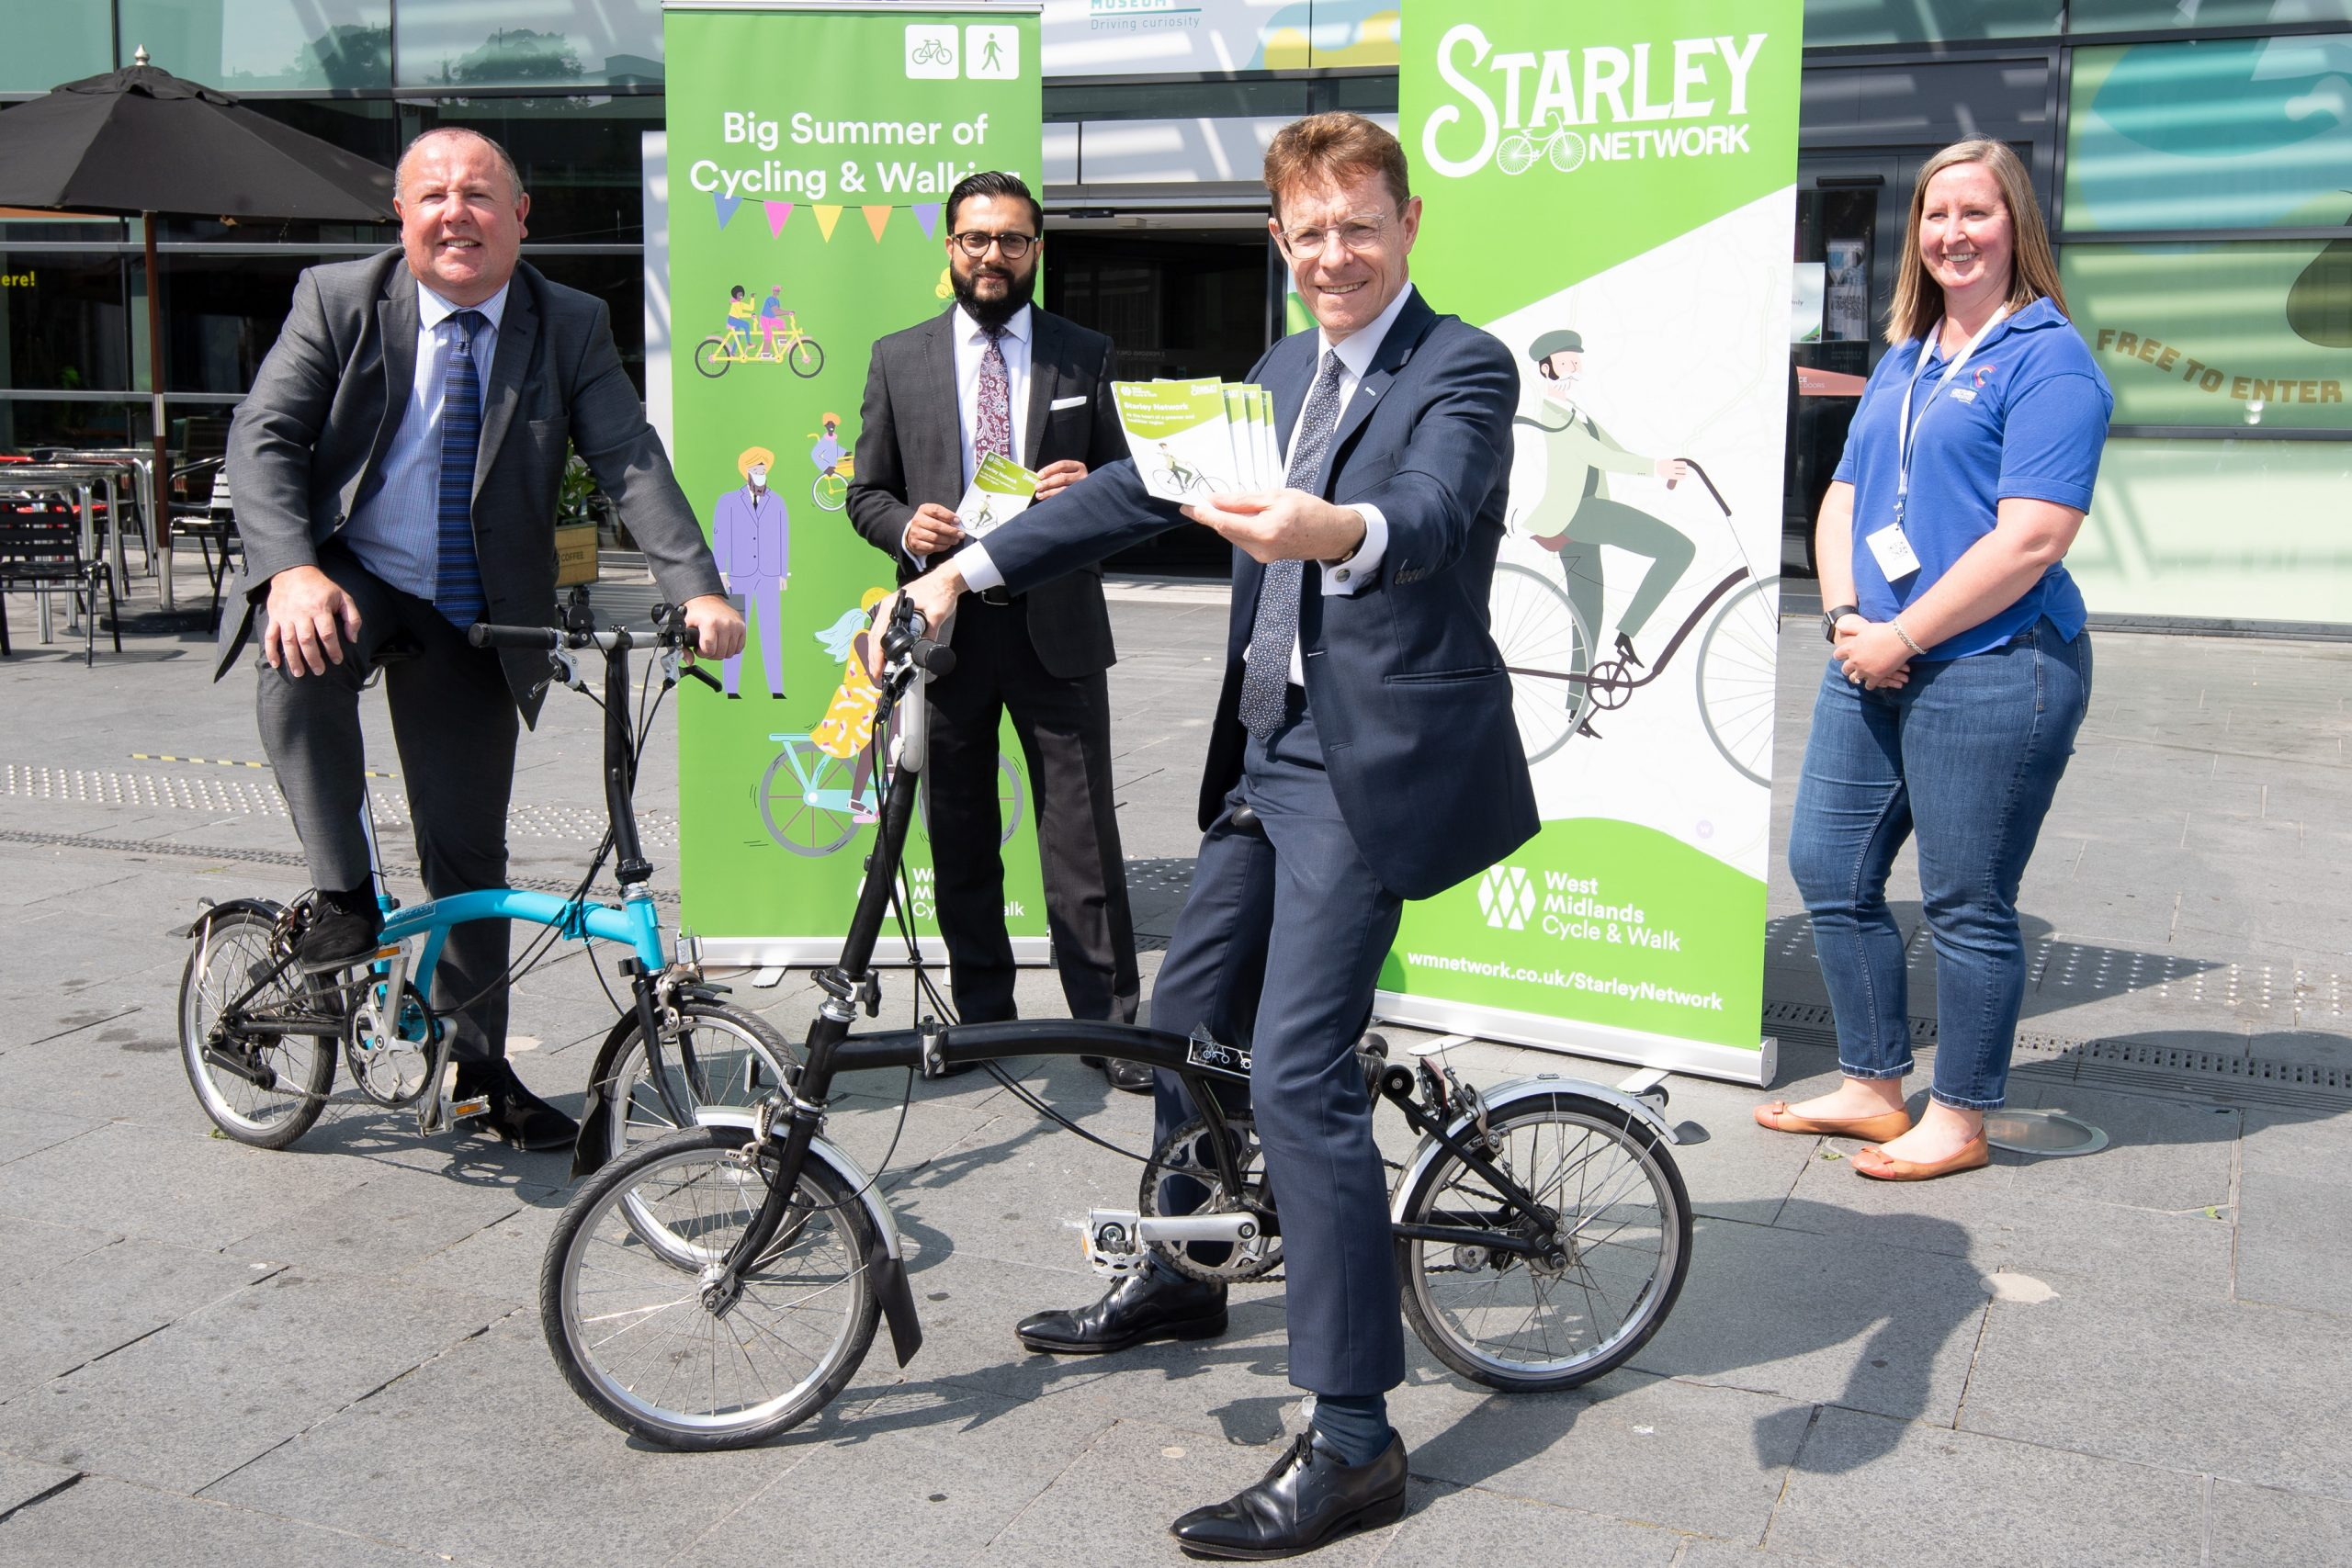 (From left) Councillor Jim O'Boyle, Coventry City Council cabinet member for jobs and regeneration, Sandeep Shingadia, TfWM's director of development and delivery, Mayor of the West Midlands Andy Street, and Megan Nass, curator of cycles and transport objects at Coventry Transport Museum.